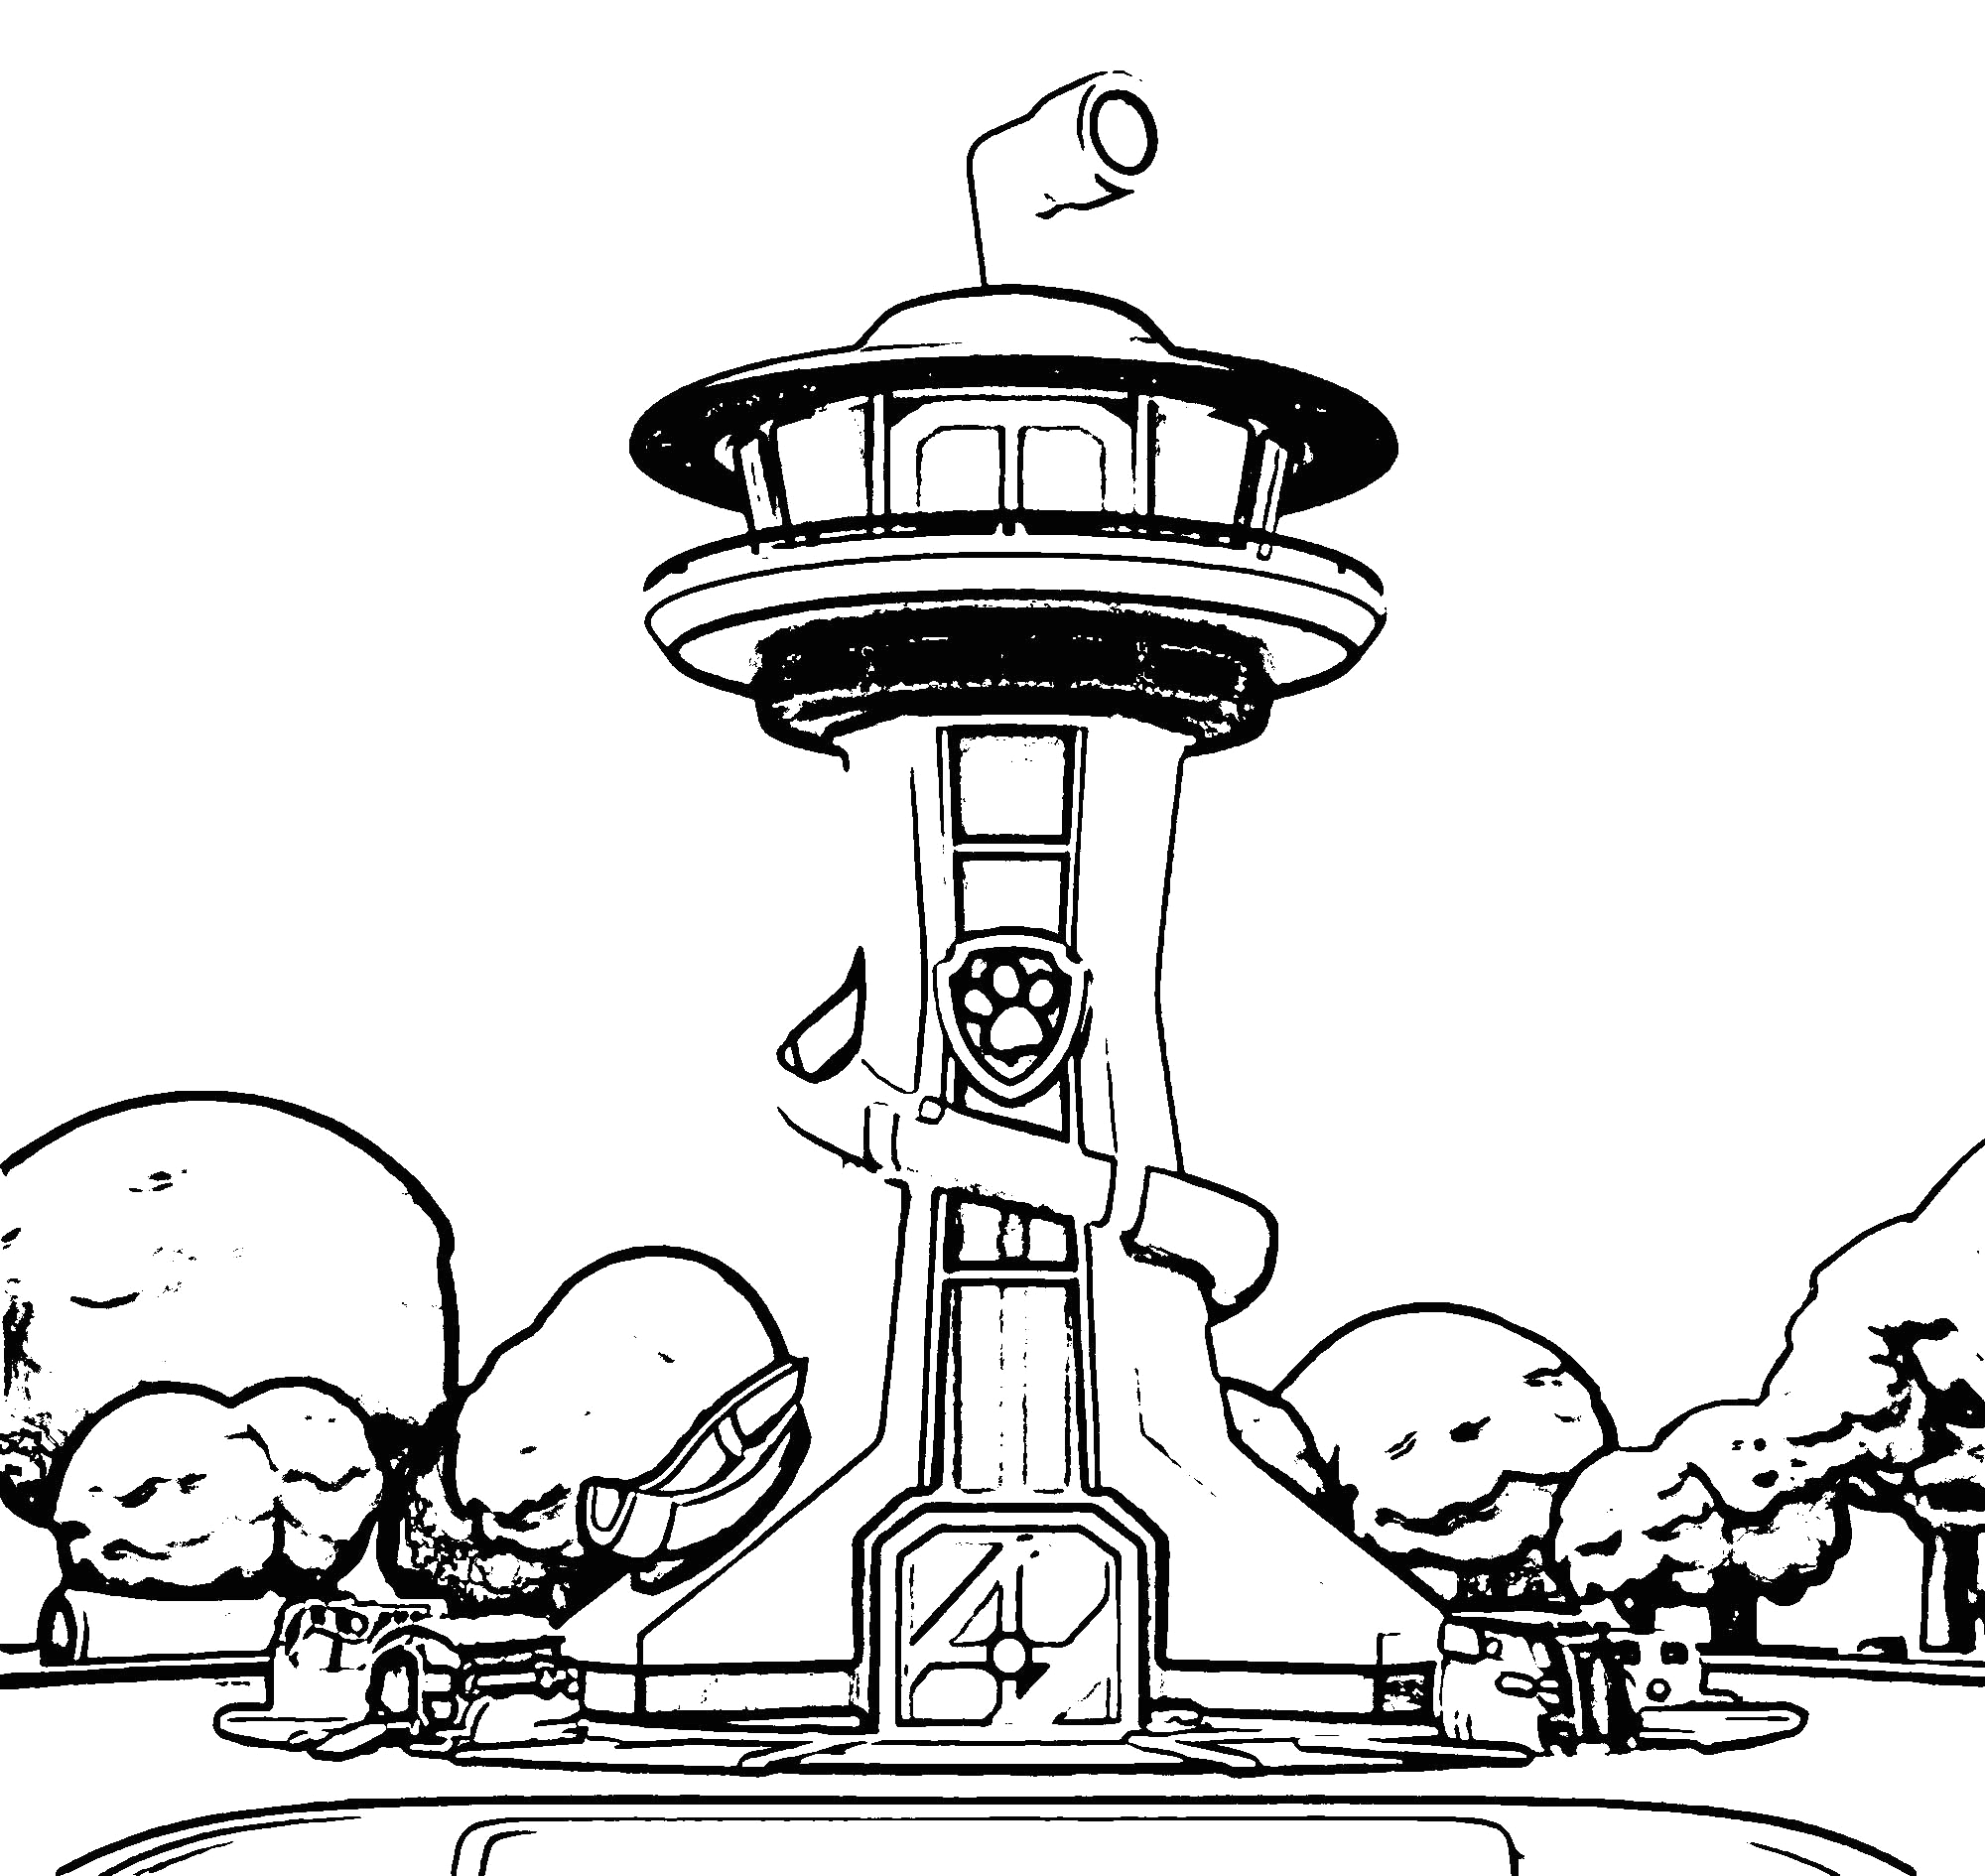 lookout paw patrol coloring page